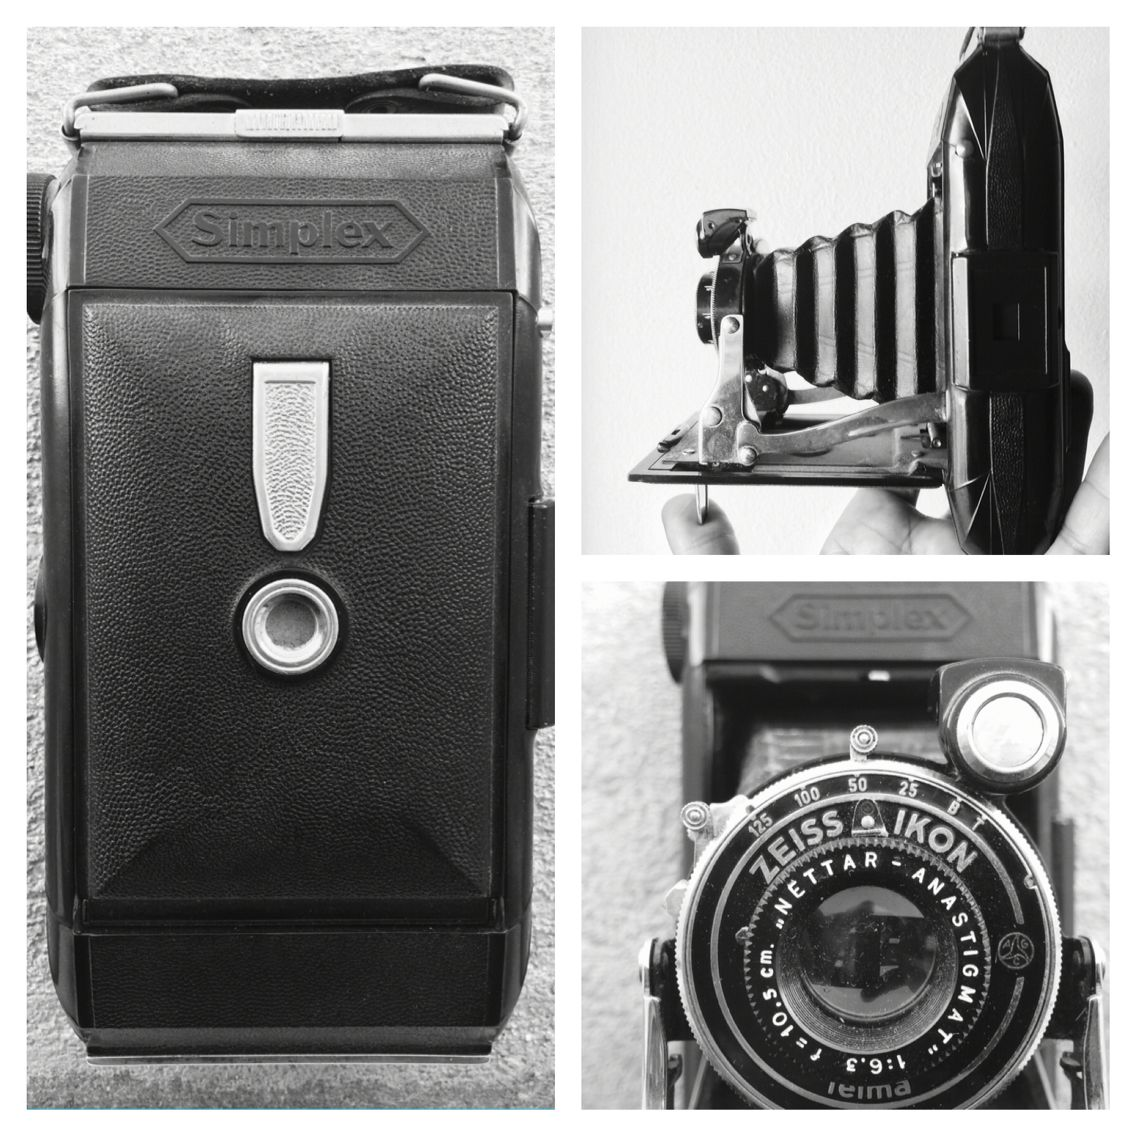 a classic folding german camera zeiss ikon simplex dated 1928 one